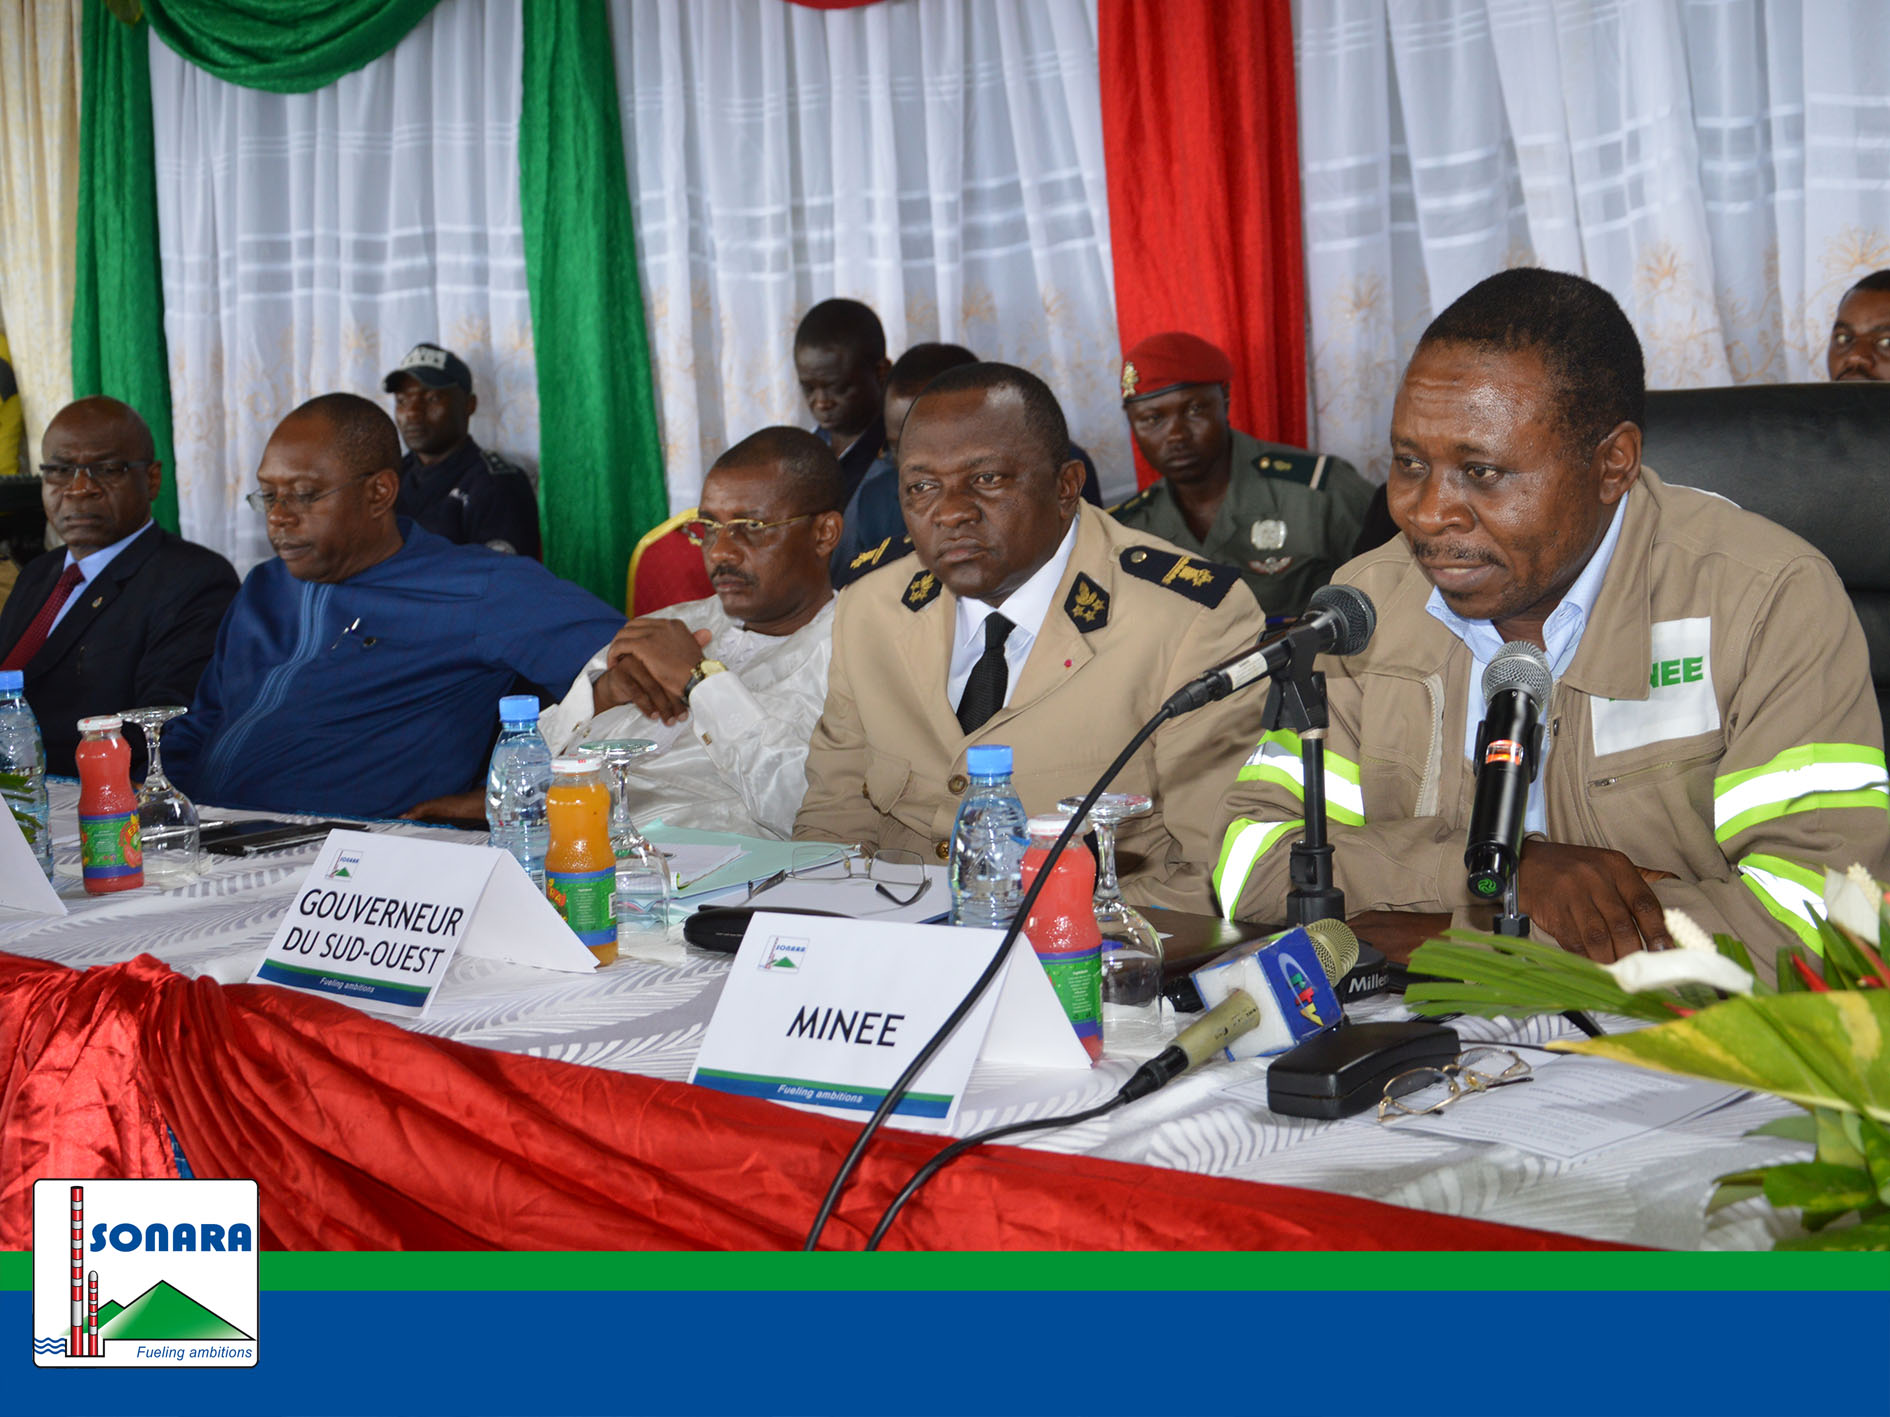 Interministerial team of the Government at SONARA